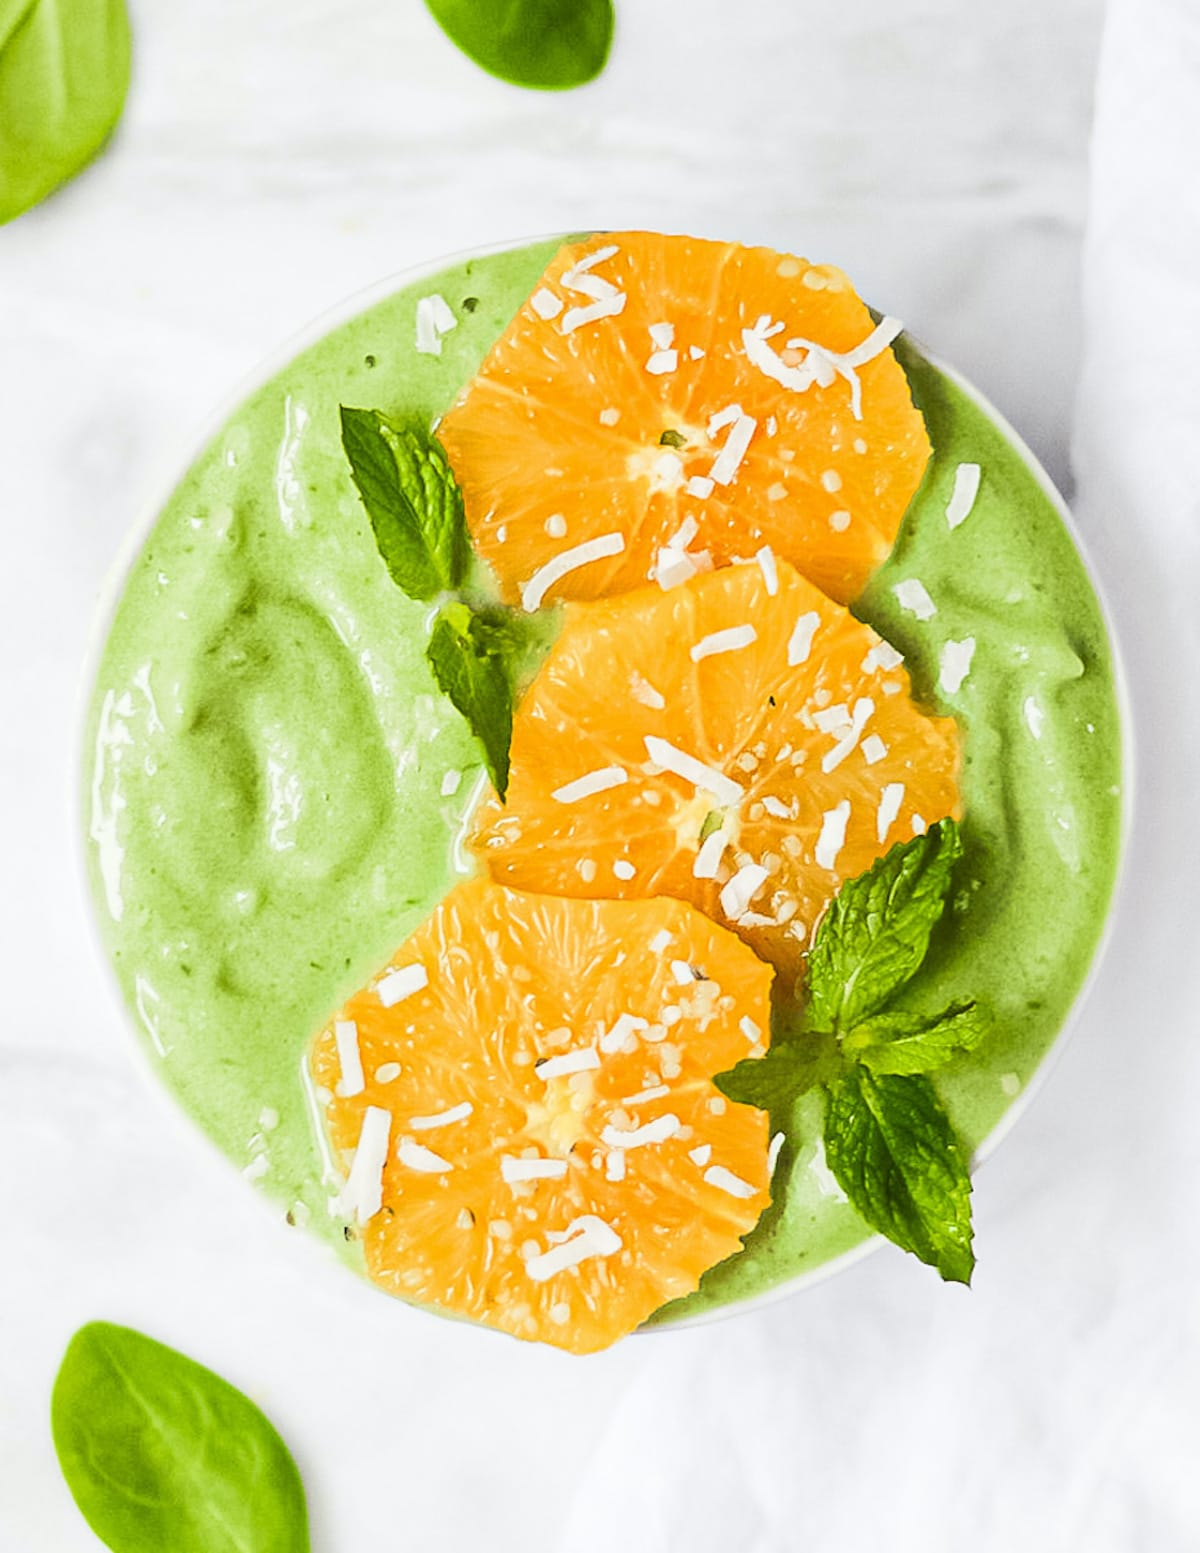 A large green creamy smoothie in a bowl. Garnished with peeled orange slices, mint, and white coconut flakes.